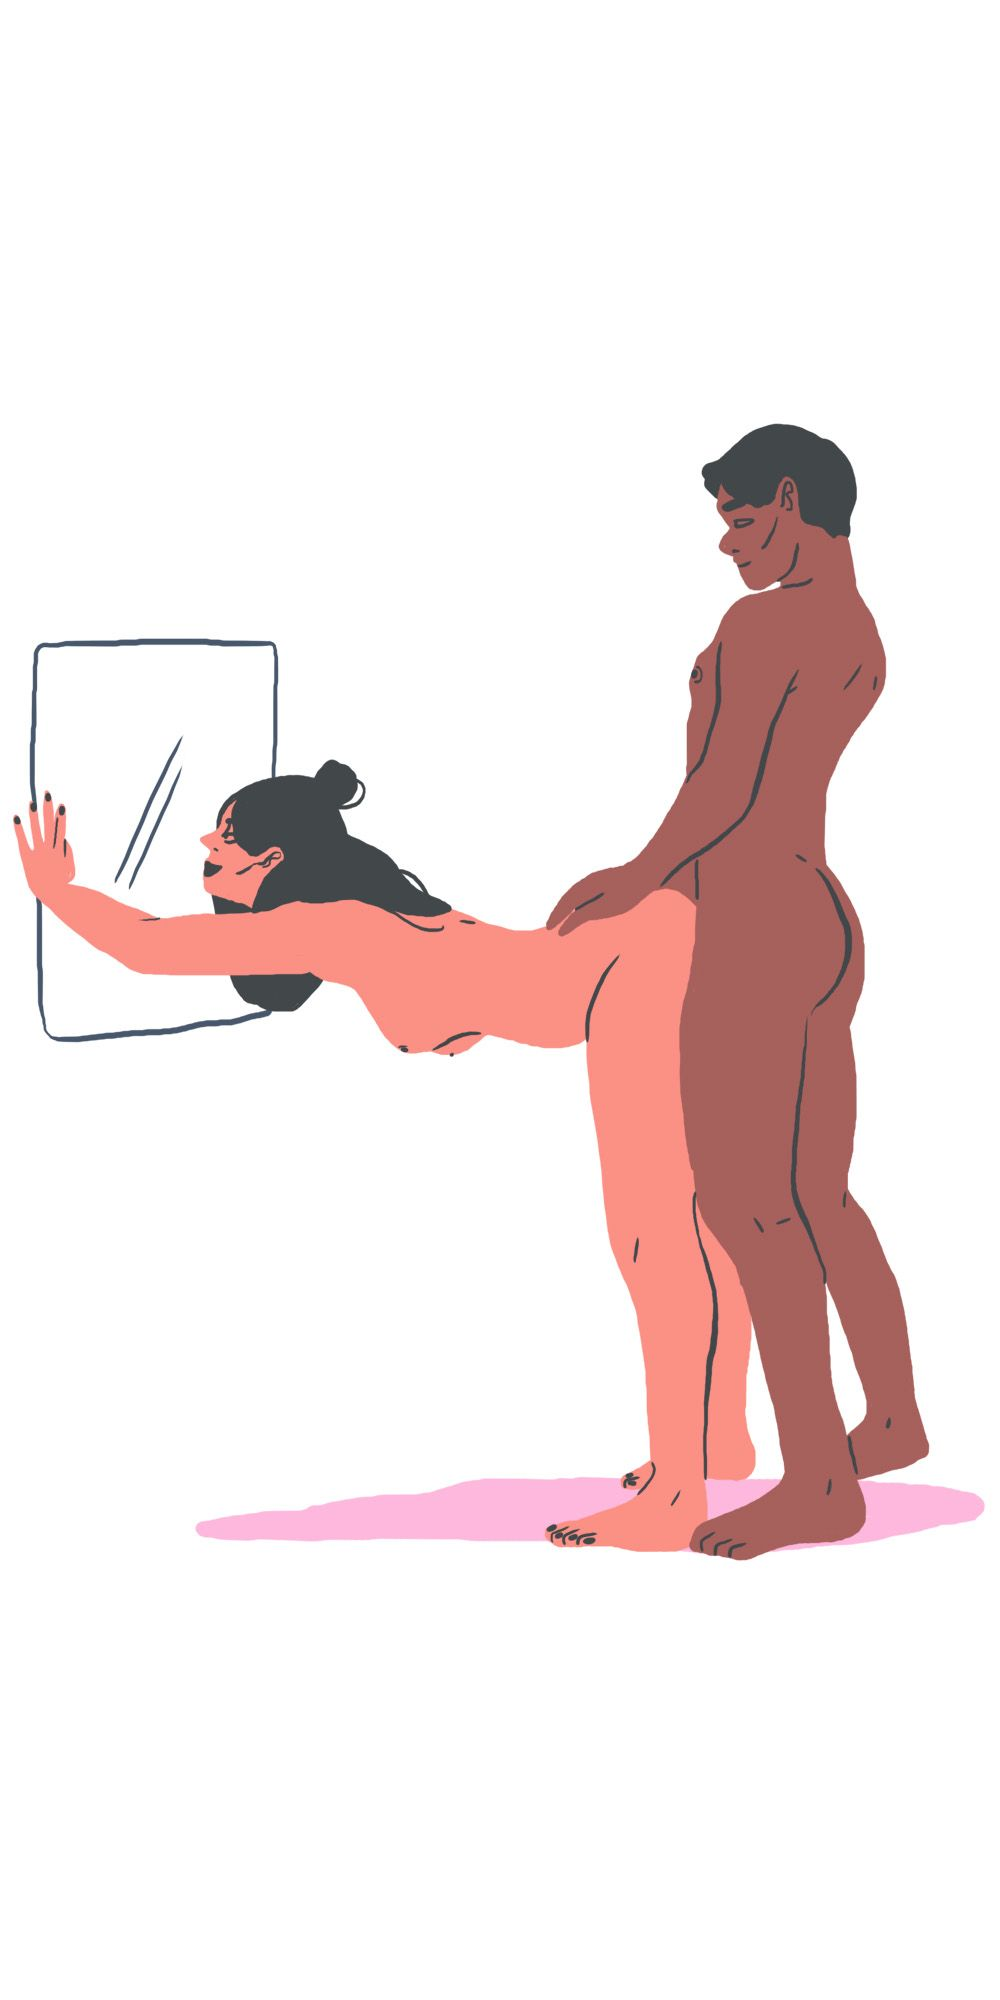 5 sex positions for people who like to watch